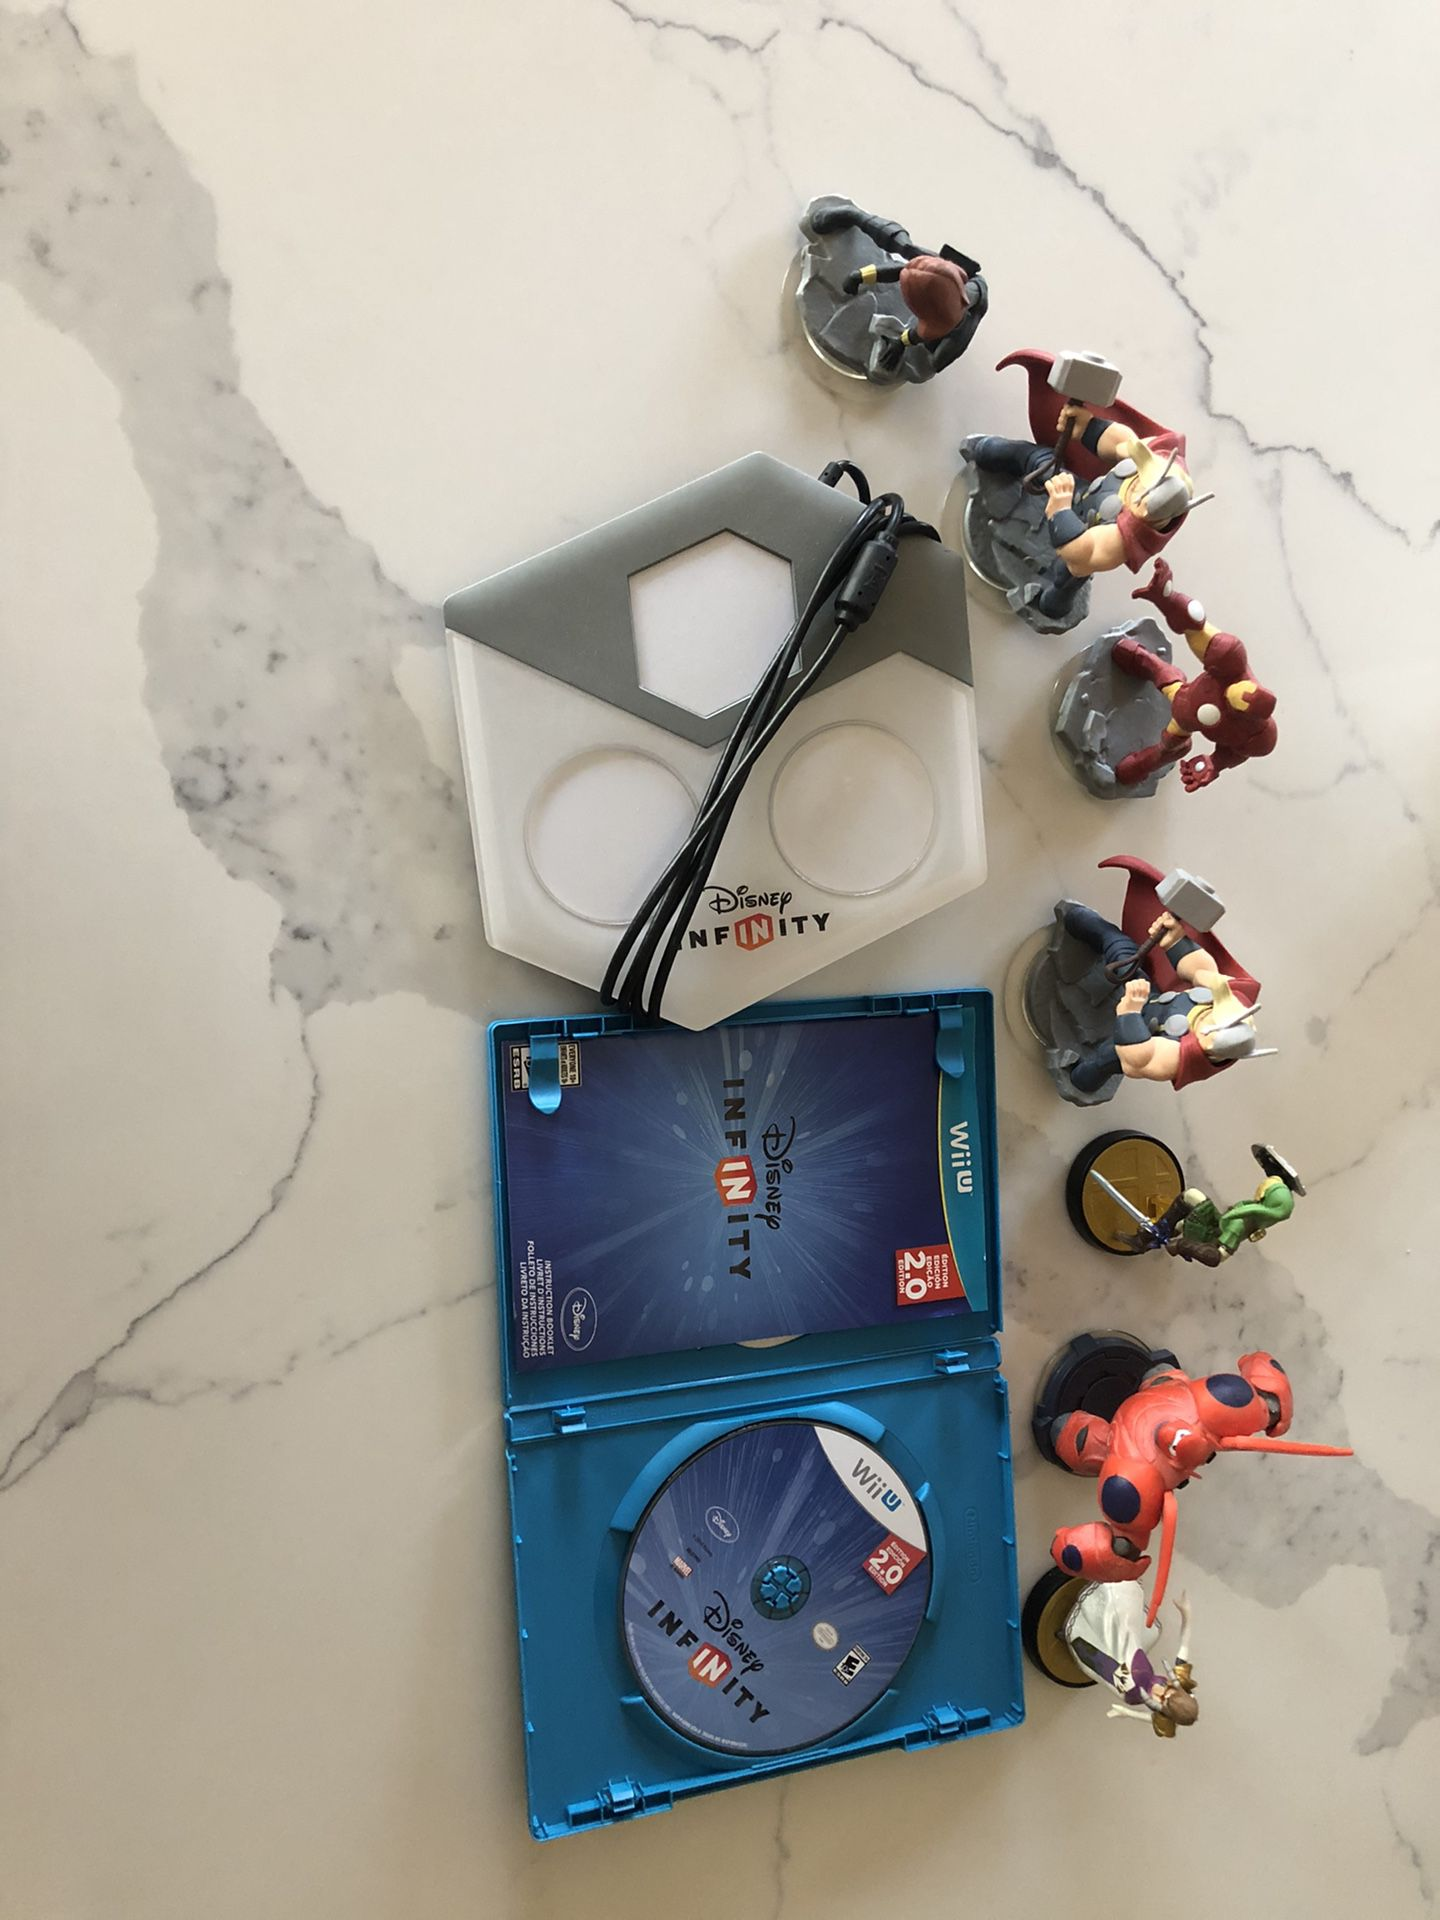 Wii U infinity game with pad and 7 figurines.